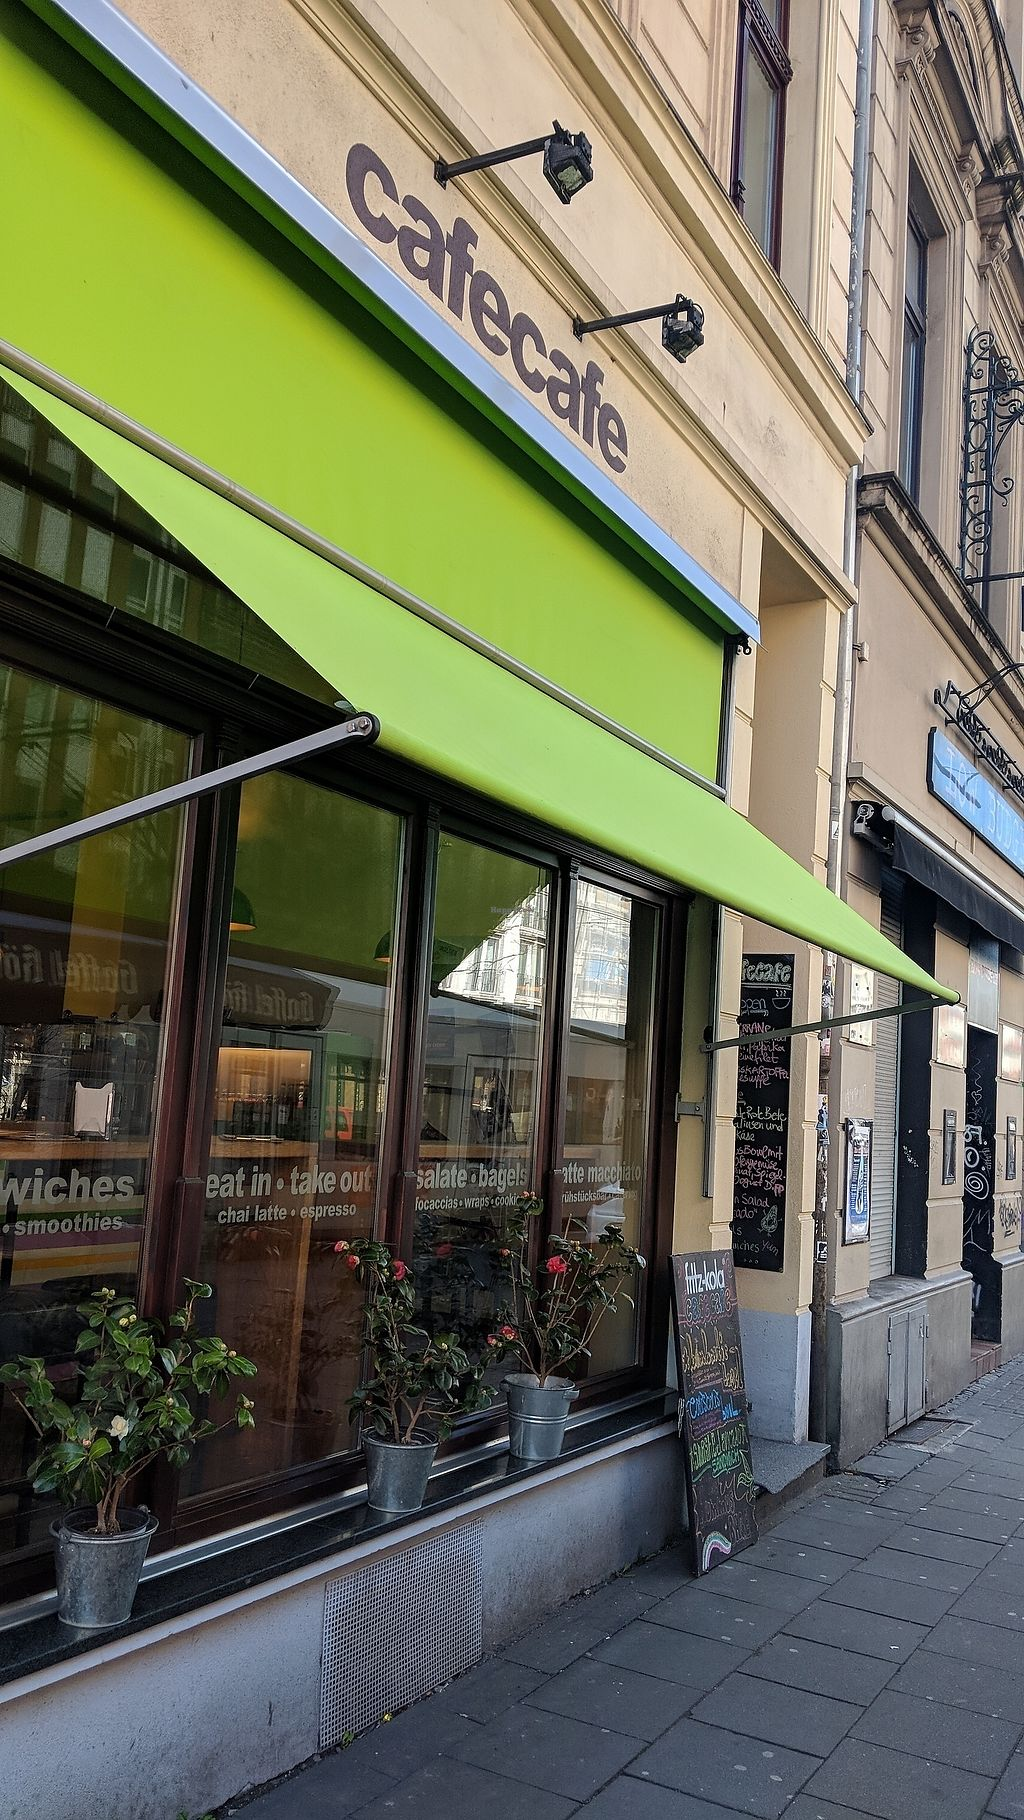 """Photo of CafeCafe Ehrenfeld  by <a href=""""/members/profile/Veganbeanstalk"""">Veganbeanstalk</a> <br/>cafecafe <br/> March 31, 2018  - <a href='/contact/abuse/image/35064/378777'>Report</a>"""